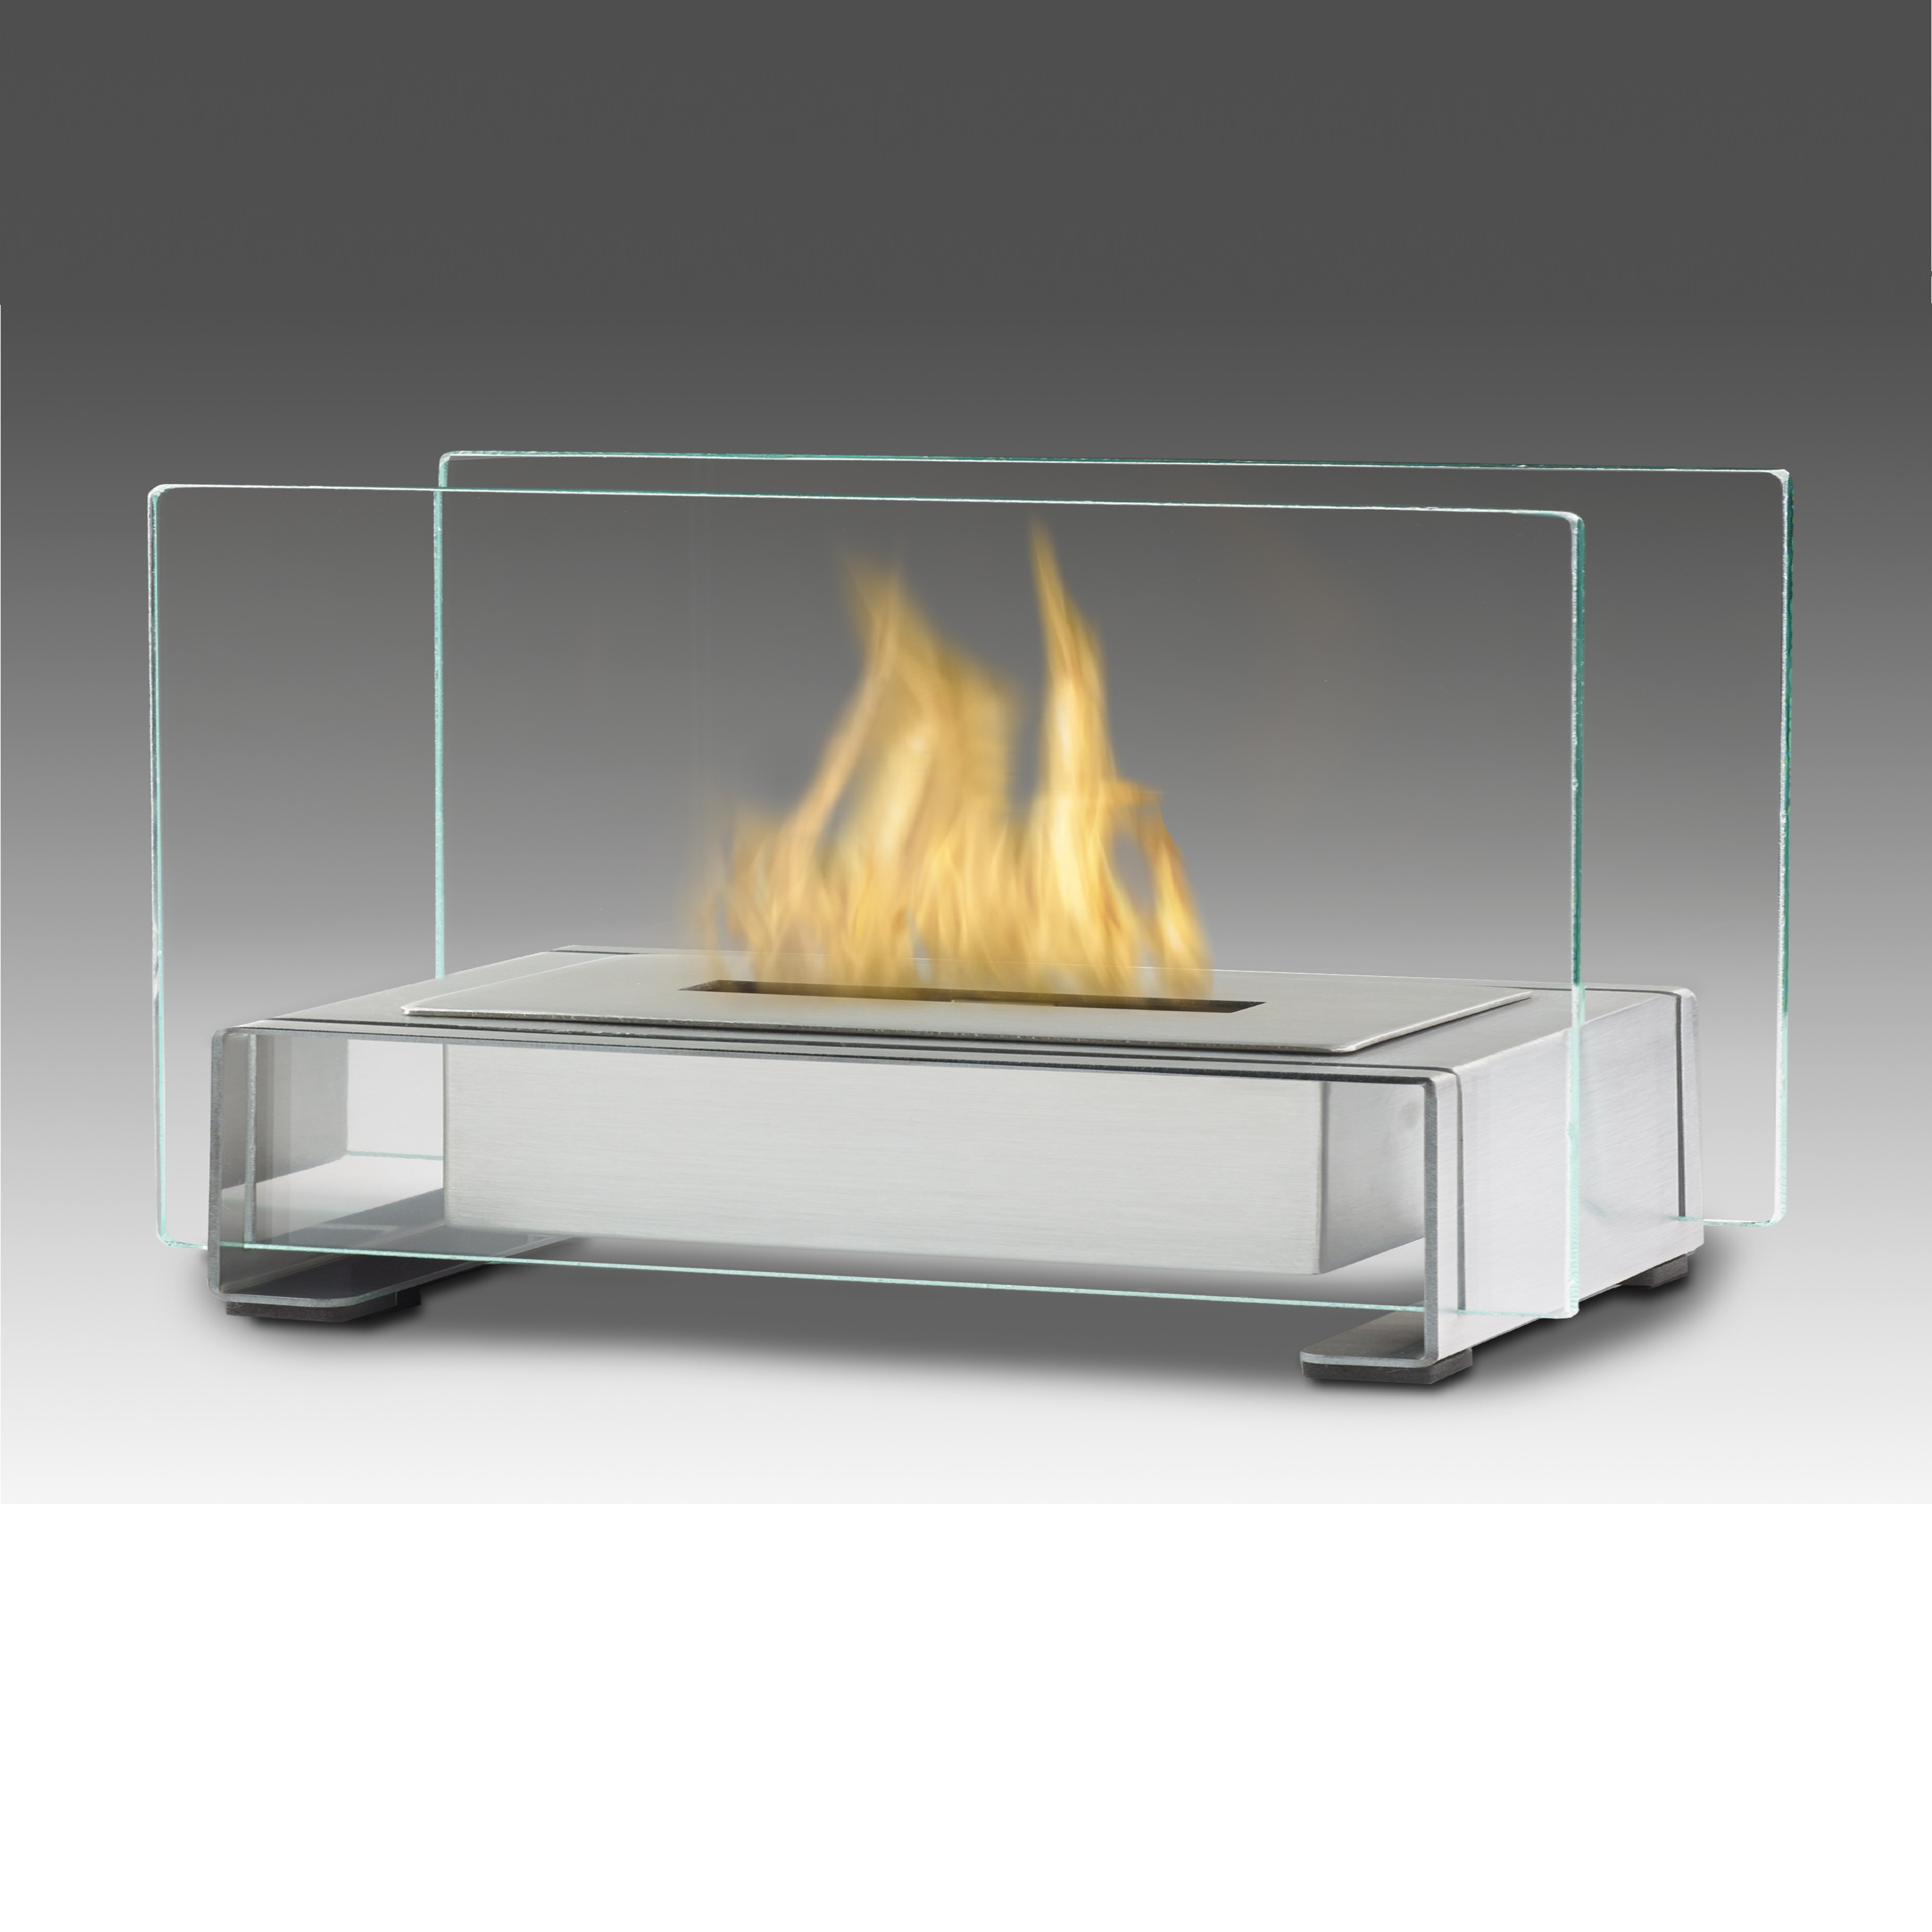 with we not t and want what ethanol narrow but wall pin fireplace fire rolled panels the isn steel fireplacelike mounted